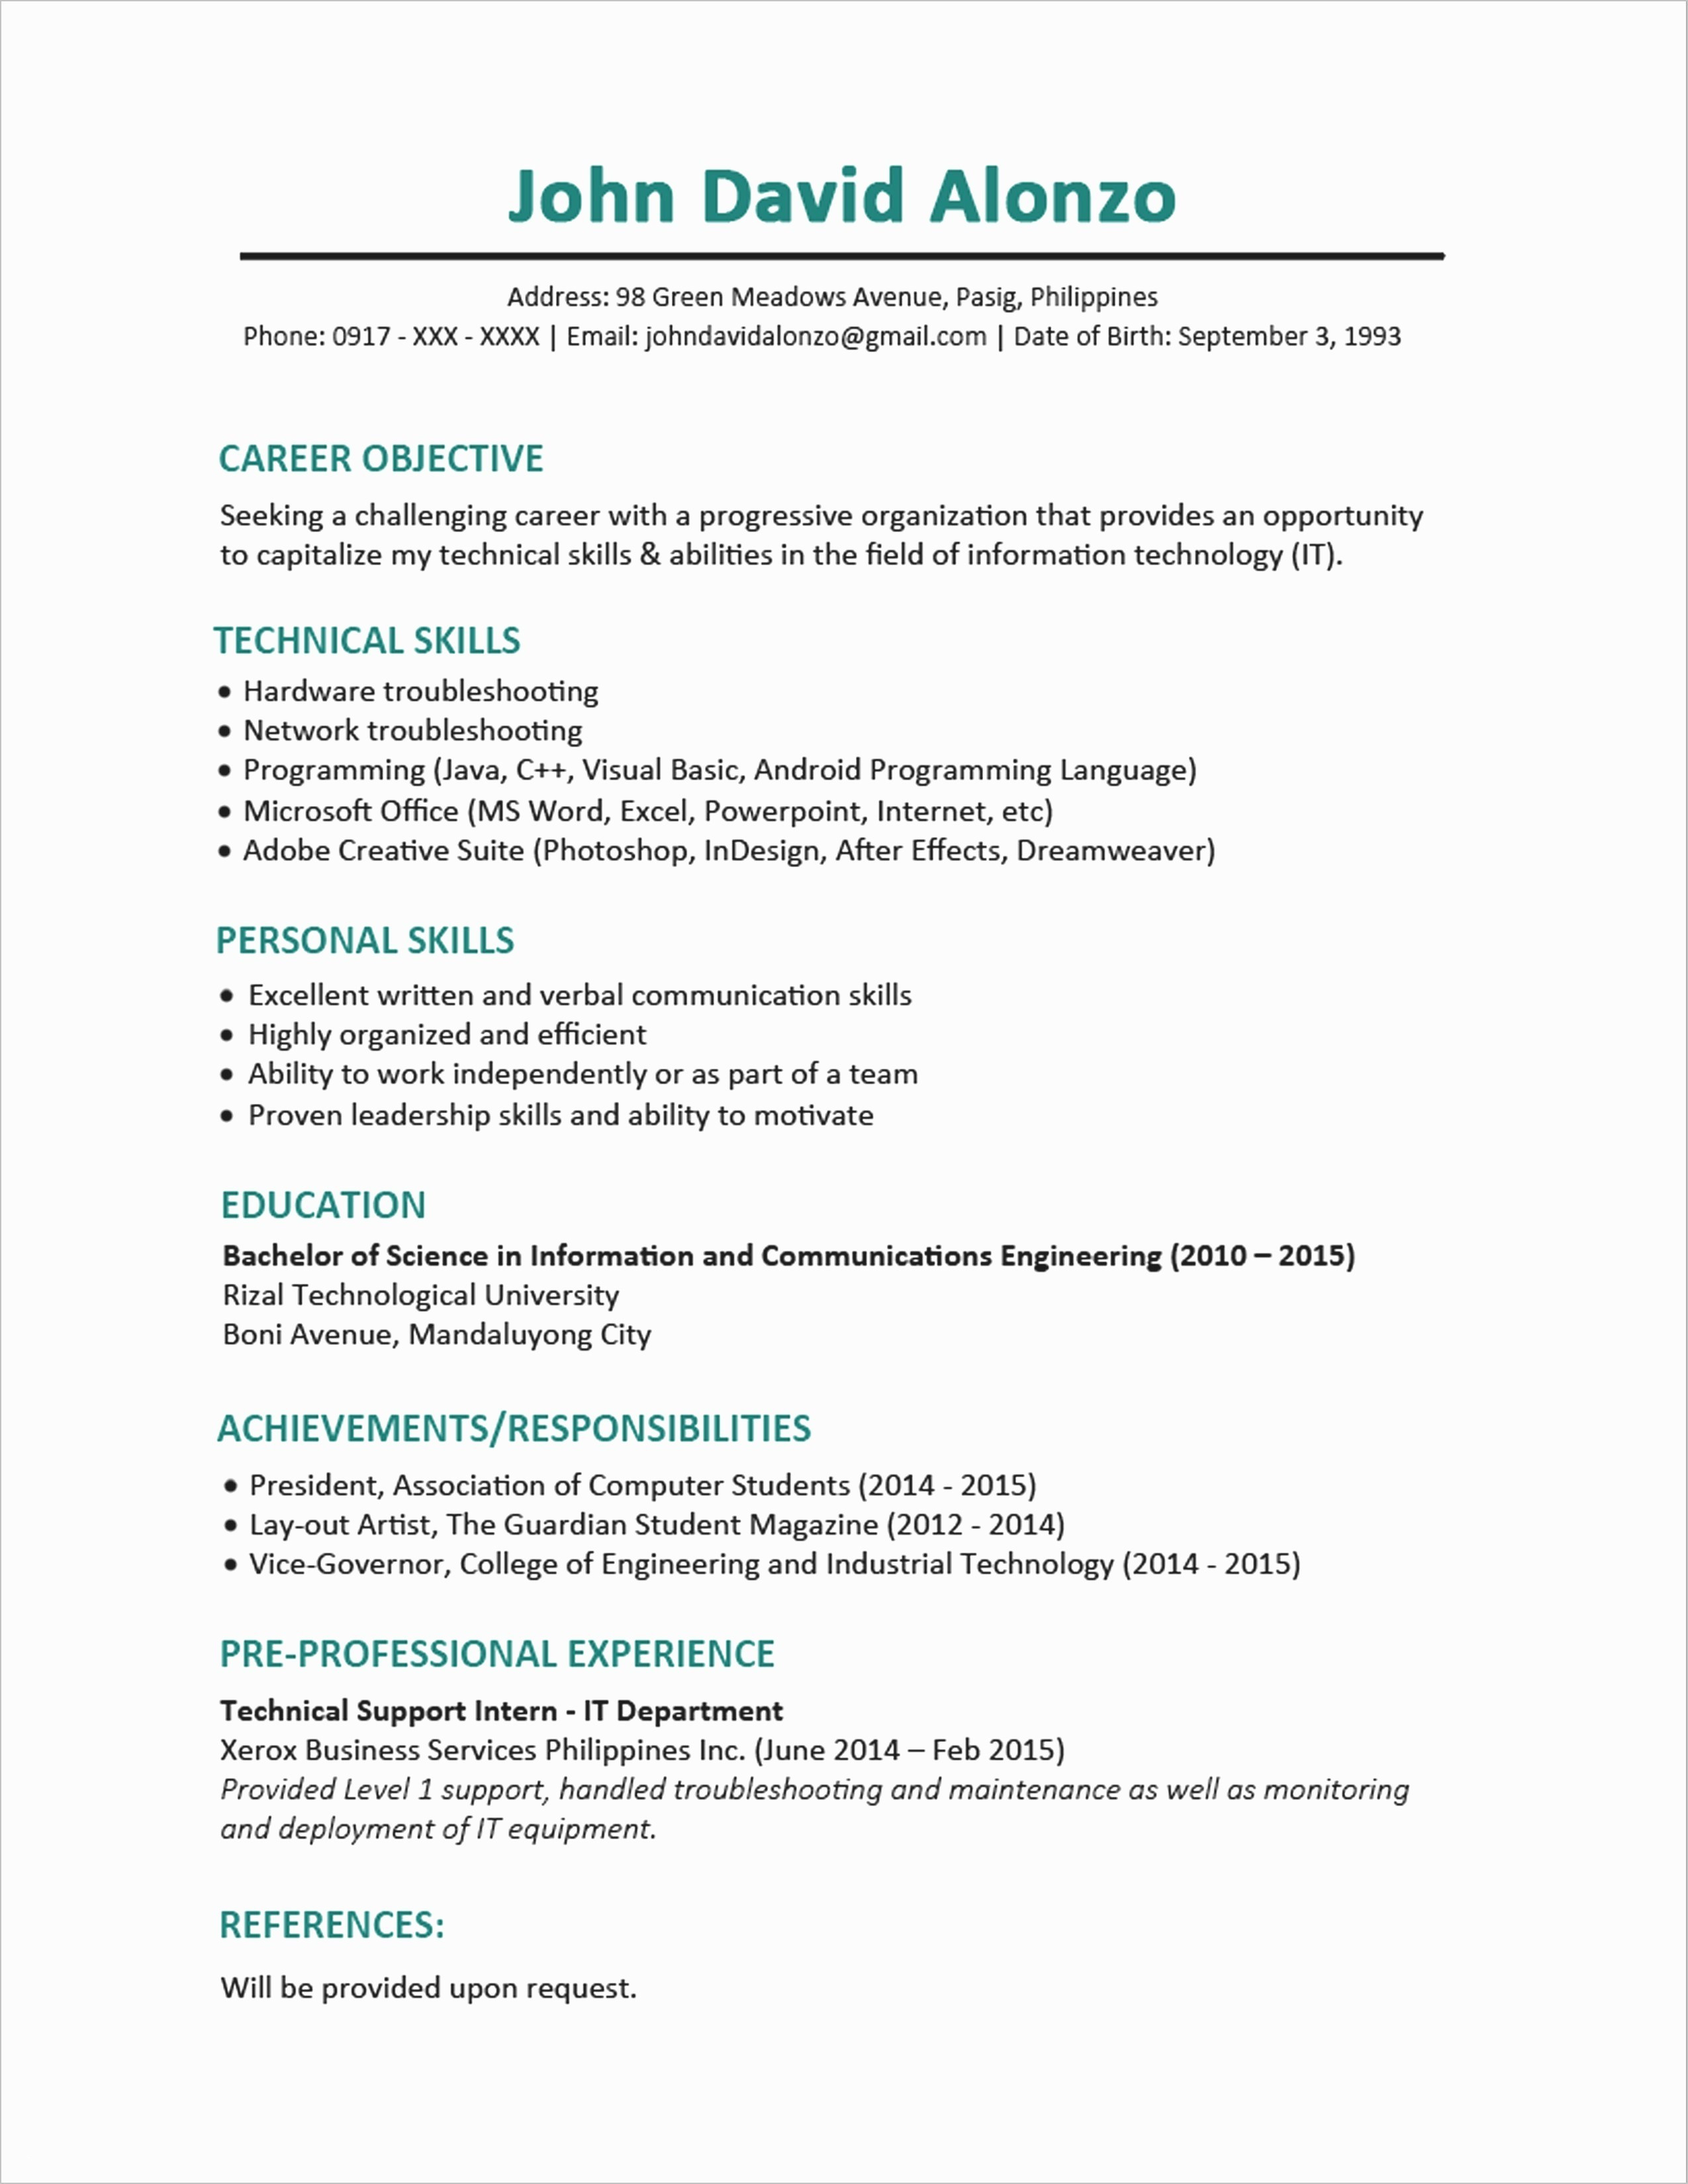 Nursing Student Resume Template Word - 35 Awesome Sample Nursing Student Resume